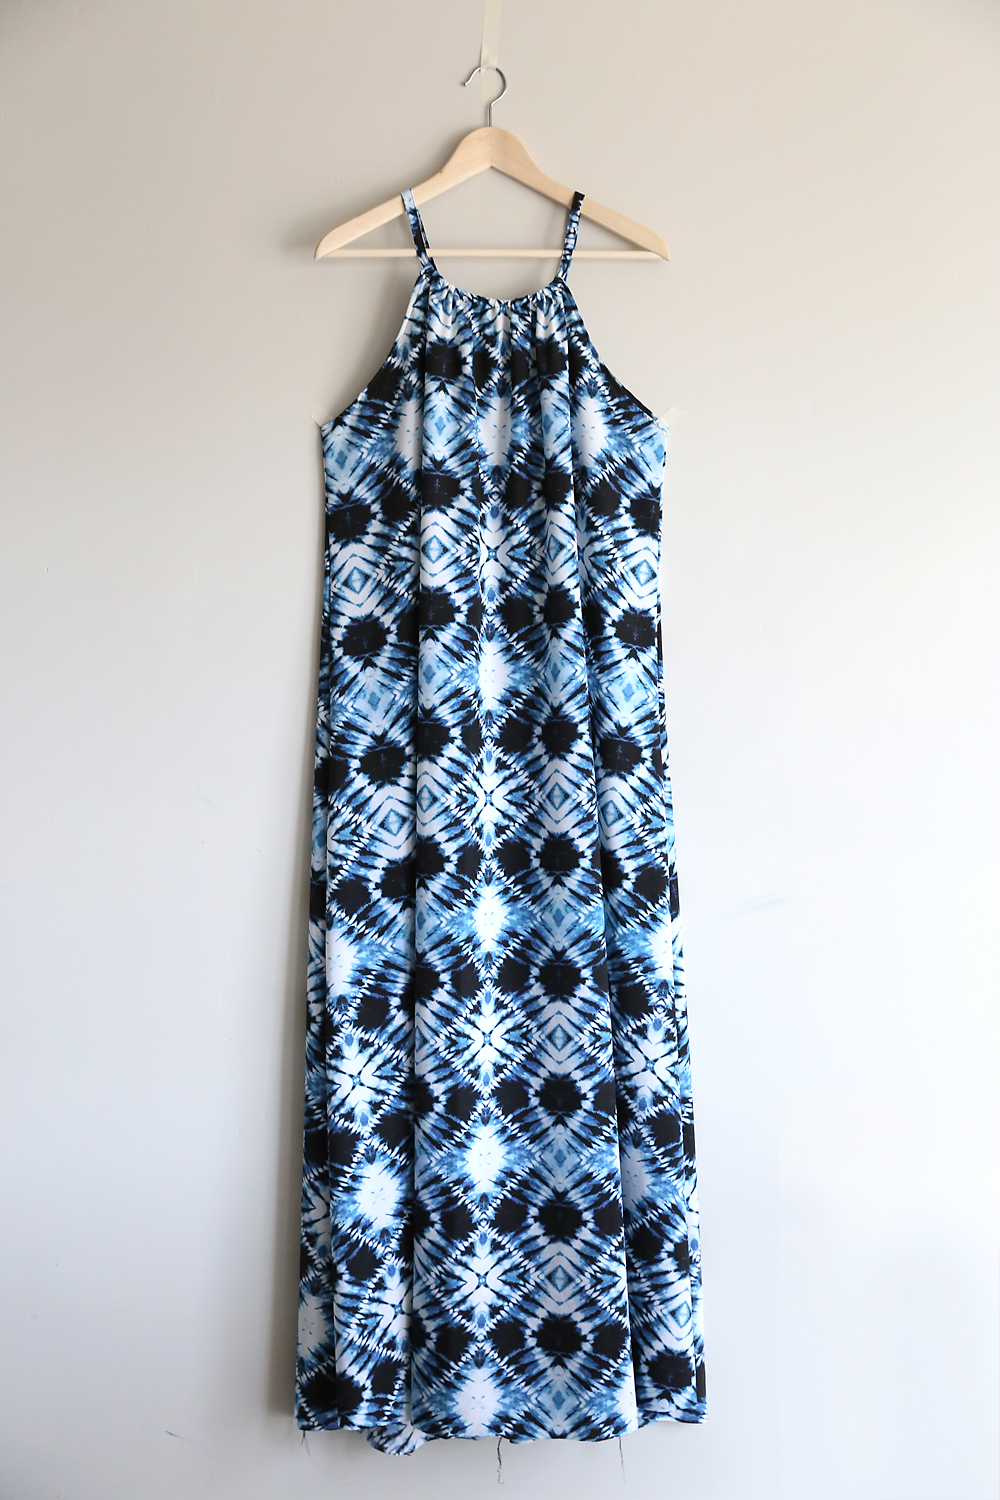 This cute halter dress is so easy to make! Click through for sewing instructions. DIY halter maxi dress.